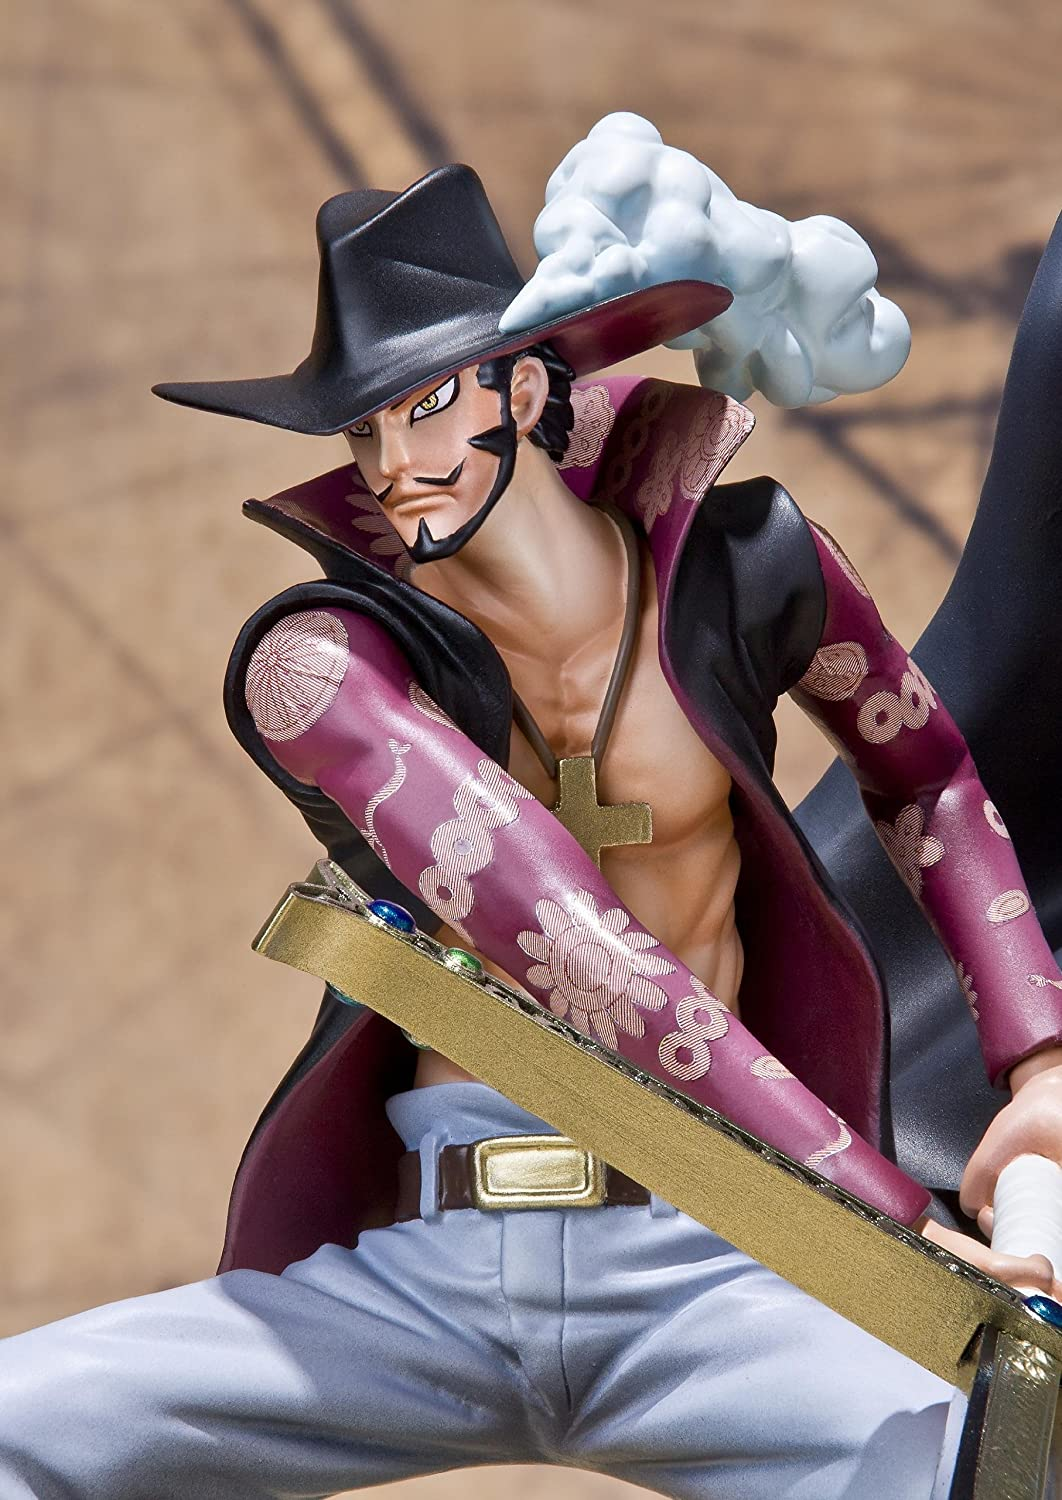 Figuarts Zero Battle Version Bandai Tamashii Nations Dracule Mihawk One Piece Bluefin Distribution Toys 75624